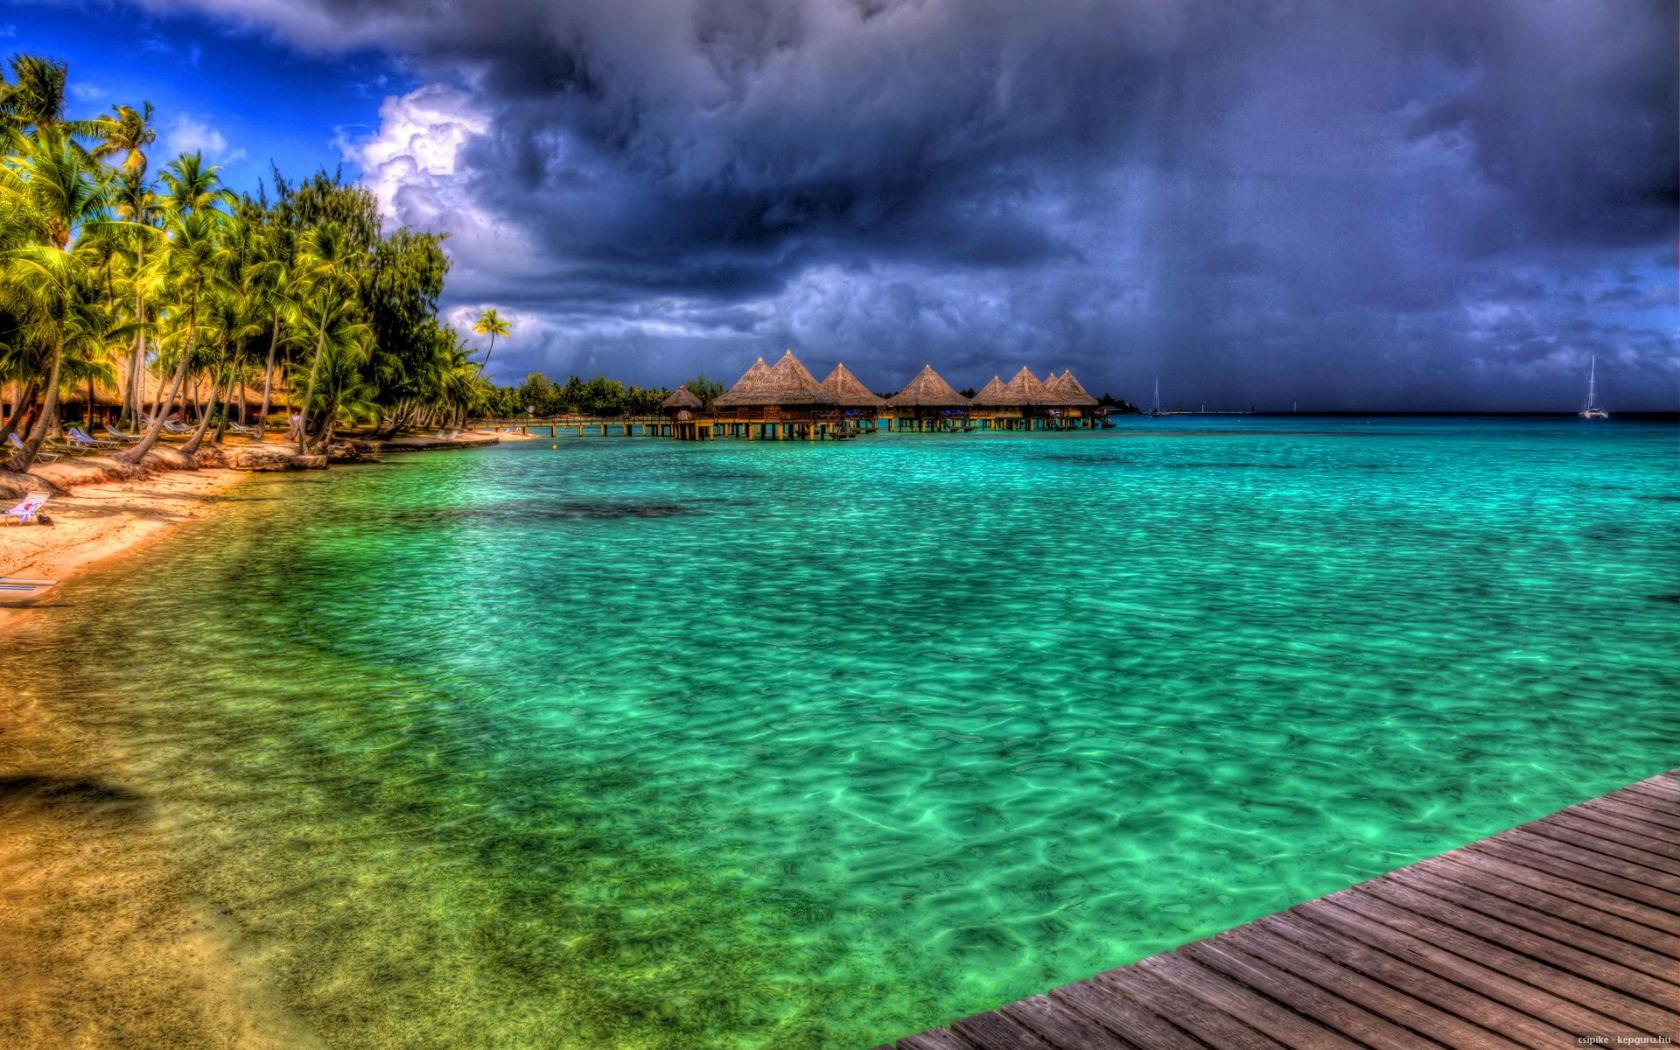 Bora bora   156709   High Quality and Resolution Wallpapers on 1680x1050